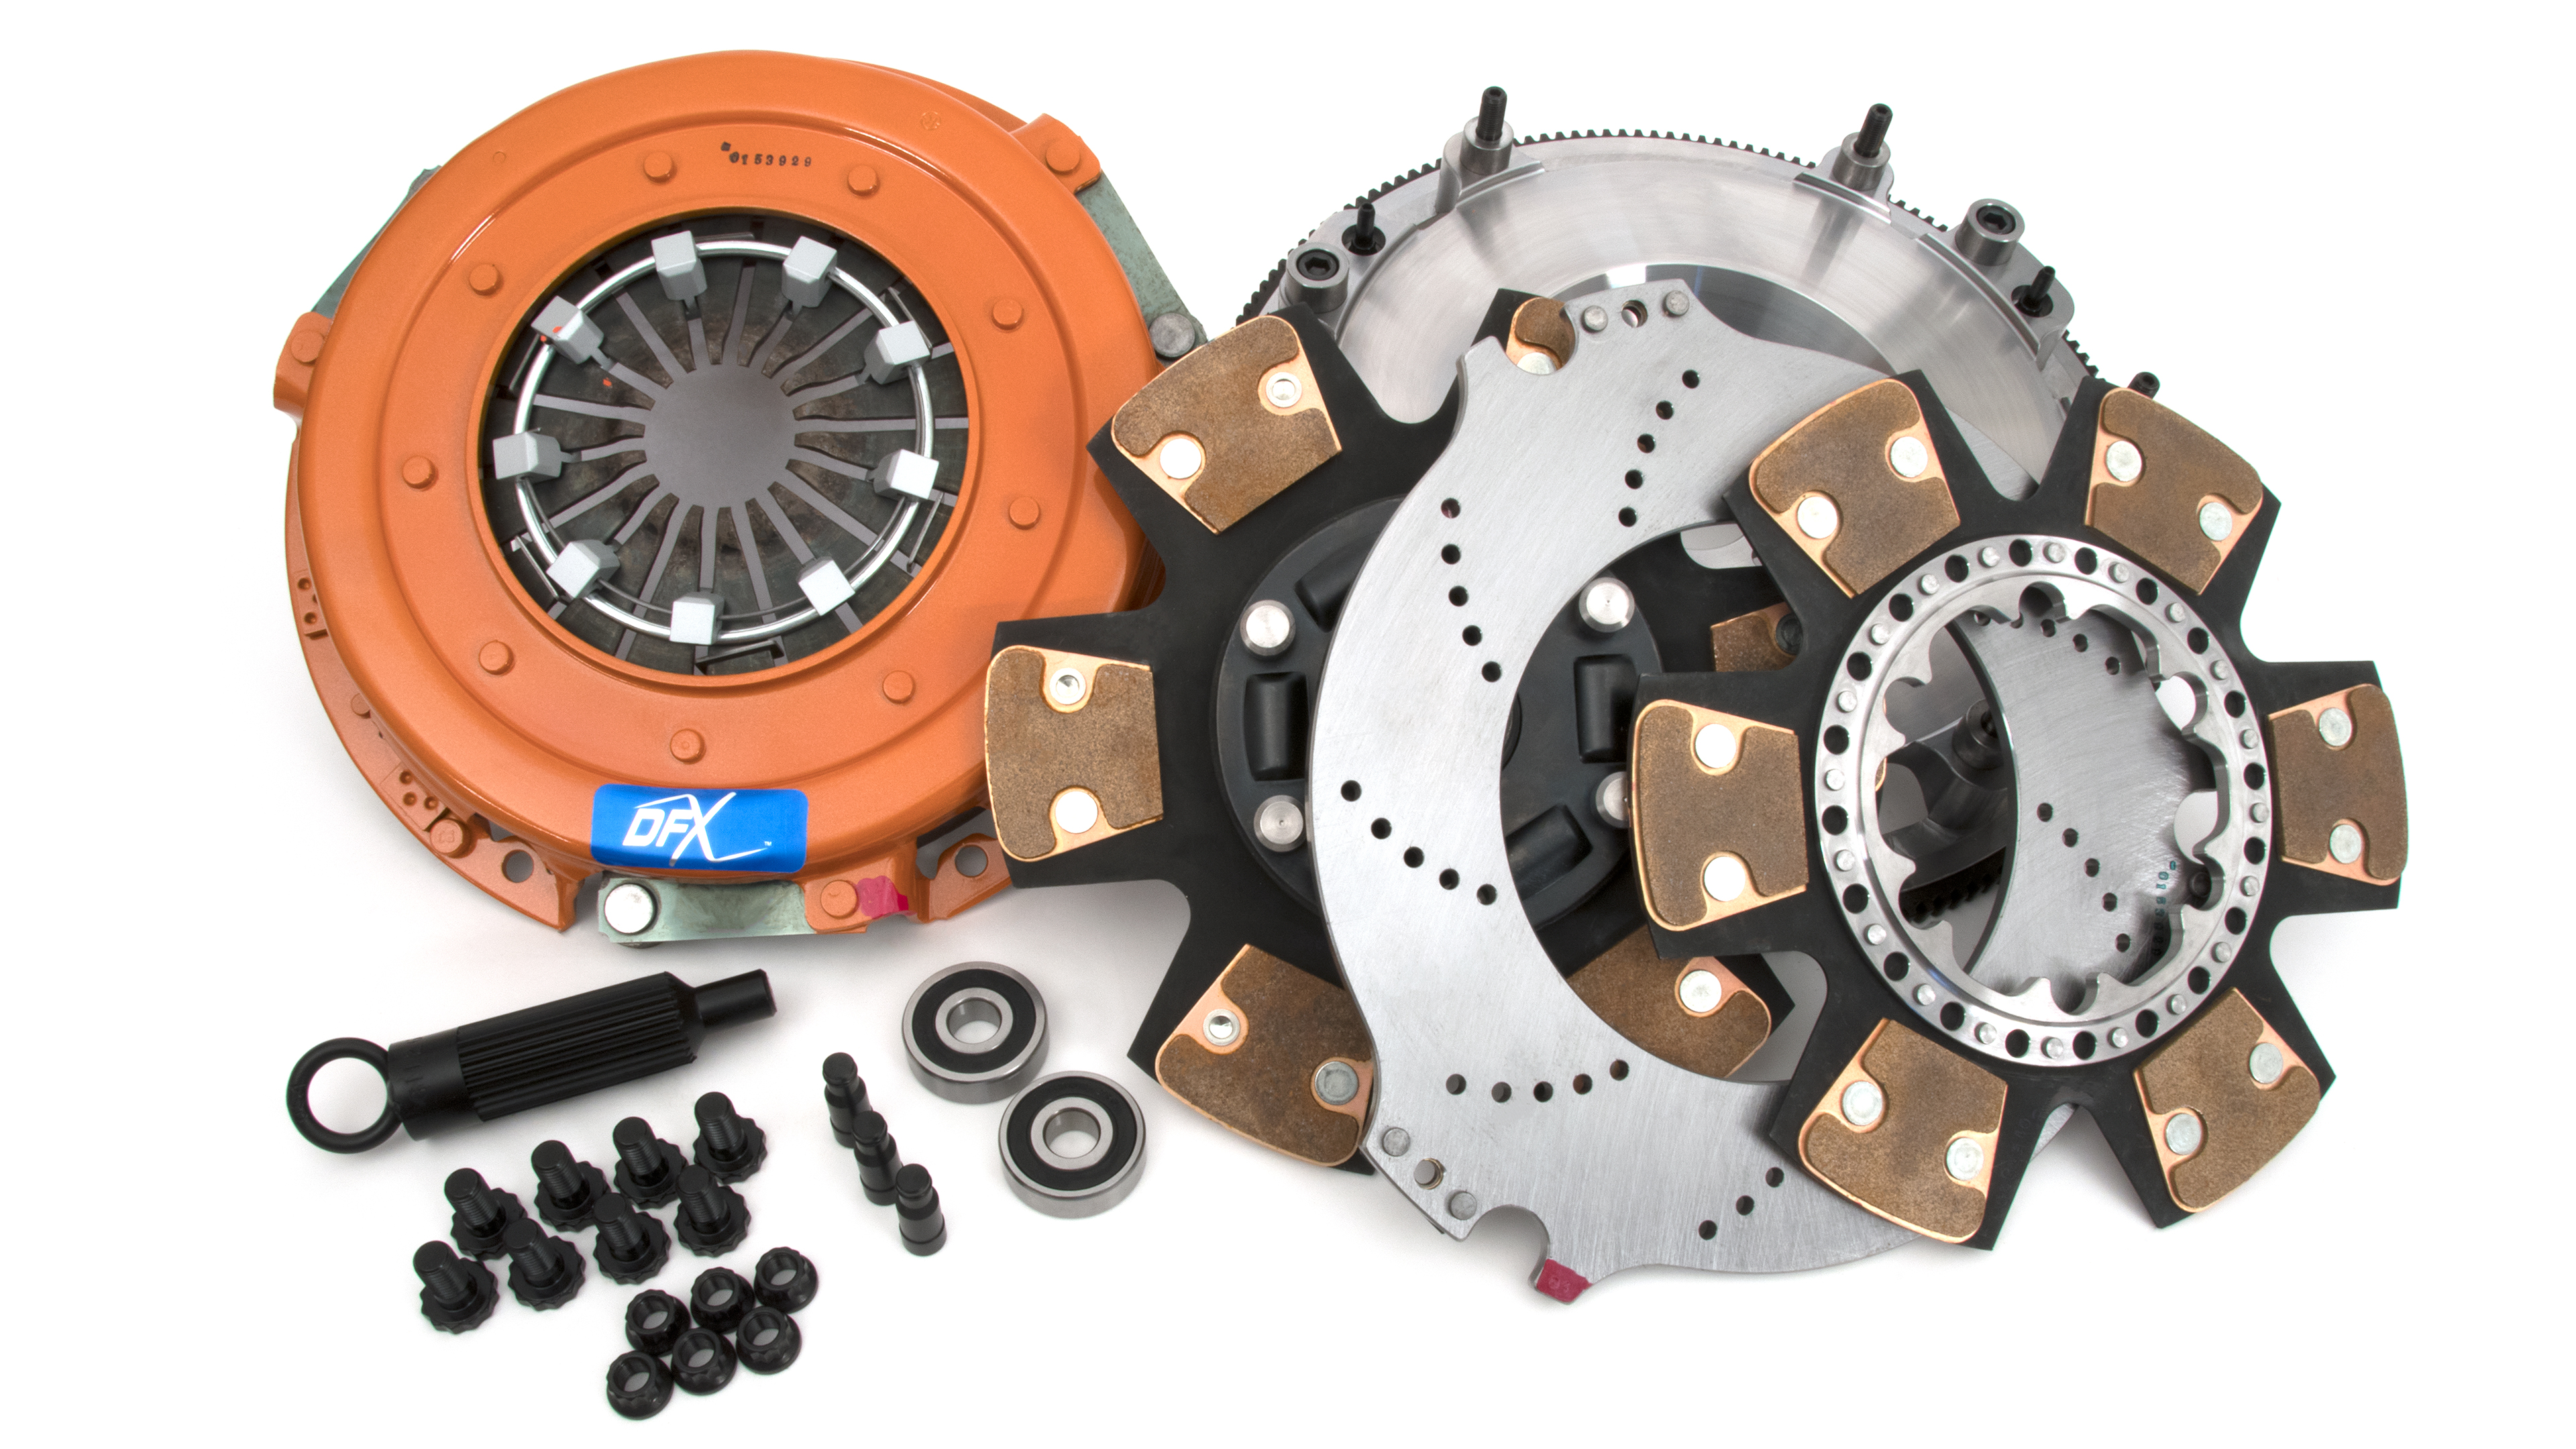 2014-2019 Chevrolet C7 Corvette Dyad XDS, Clutch and